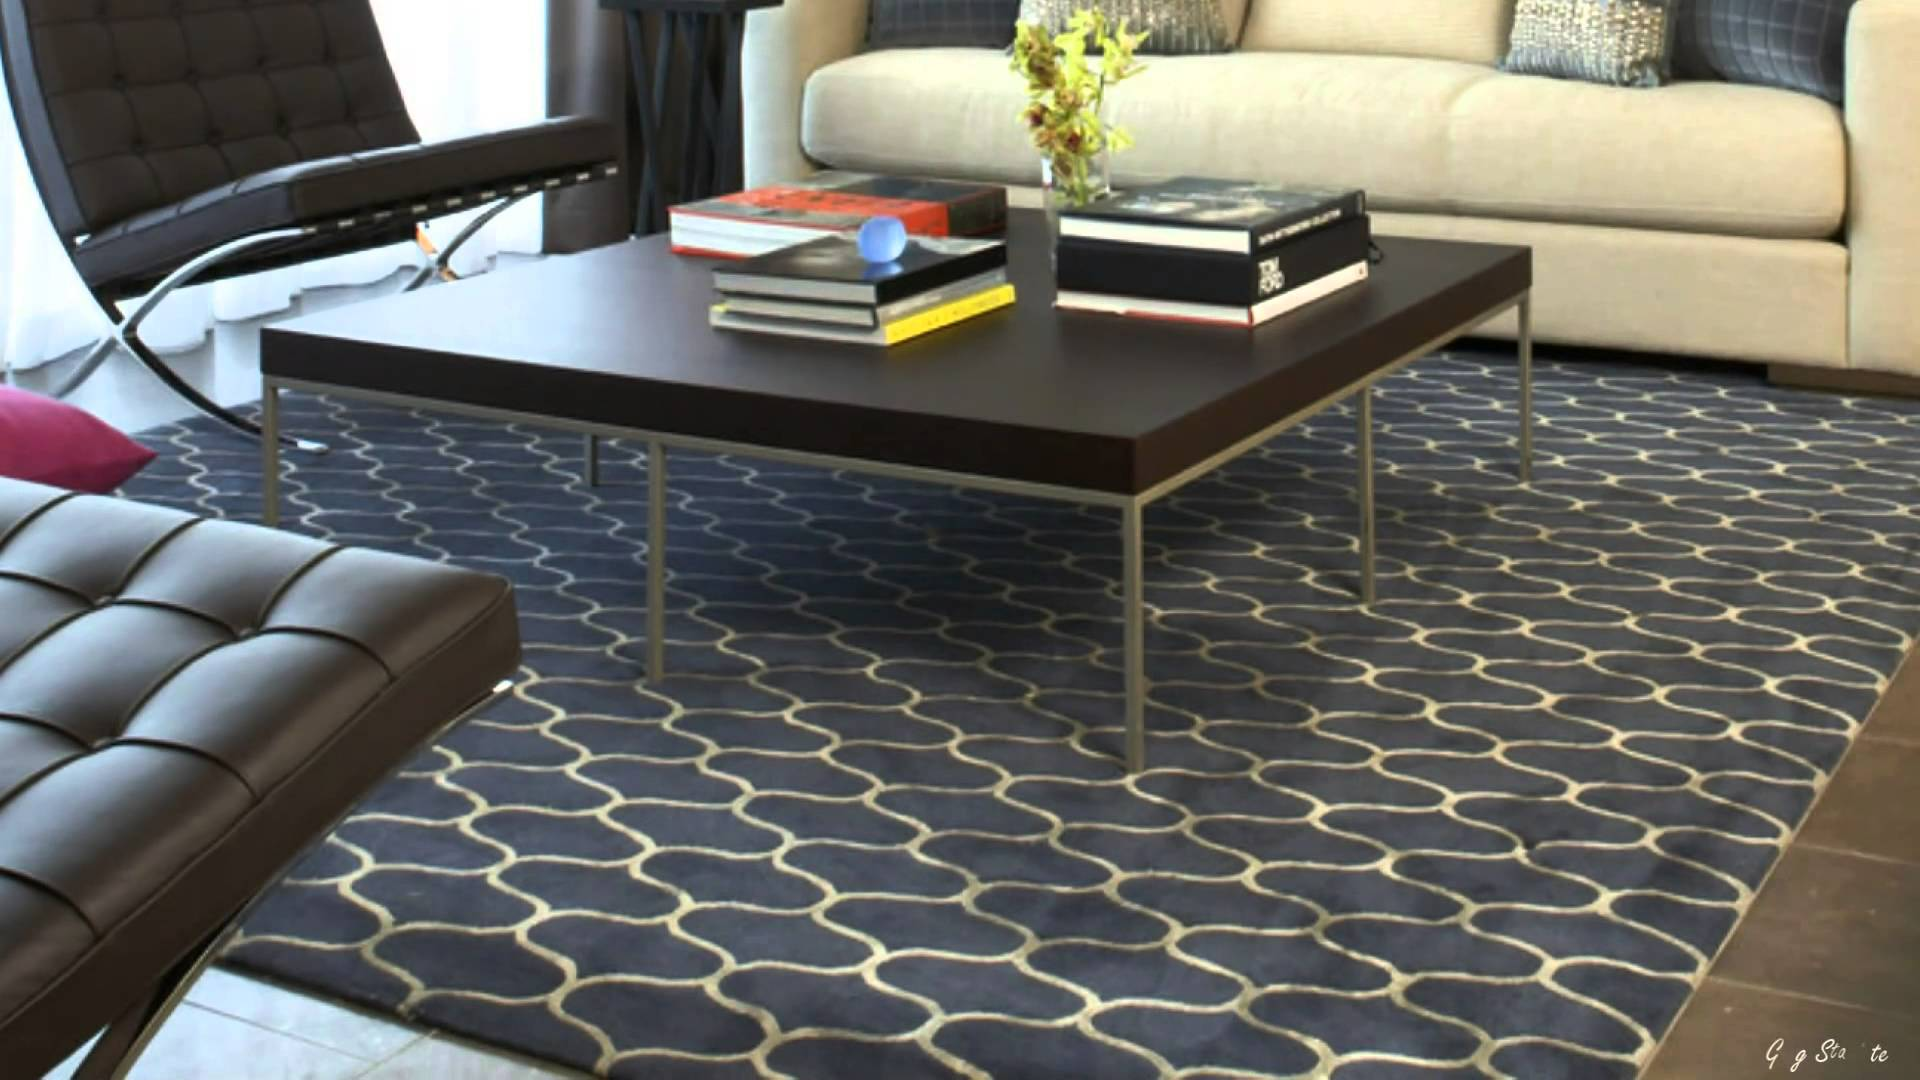 Carpet design ideas patterned carpet - living room design ideas - youtube HUFQVWO